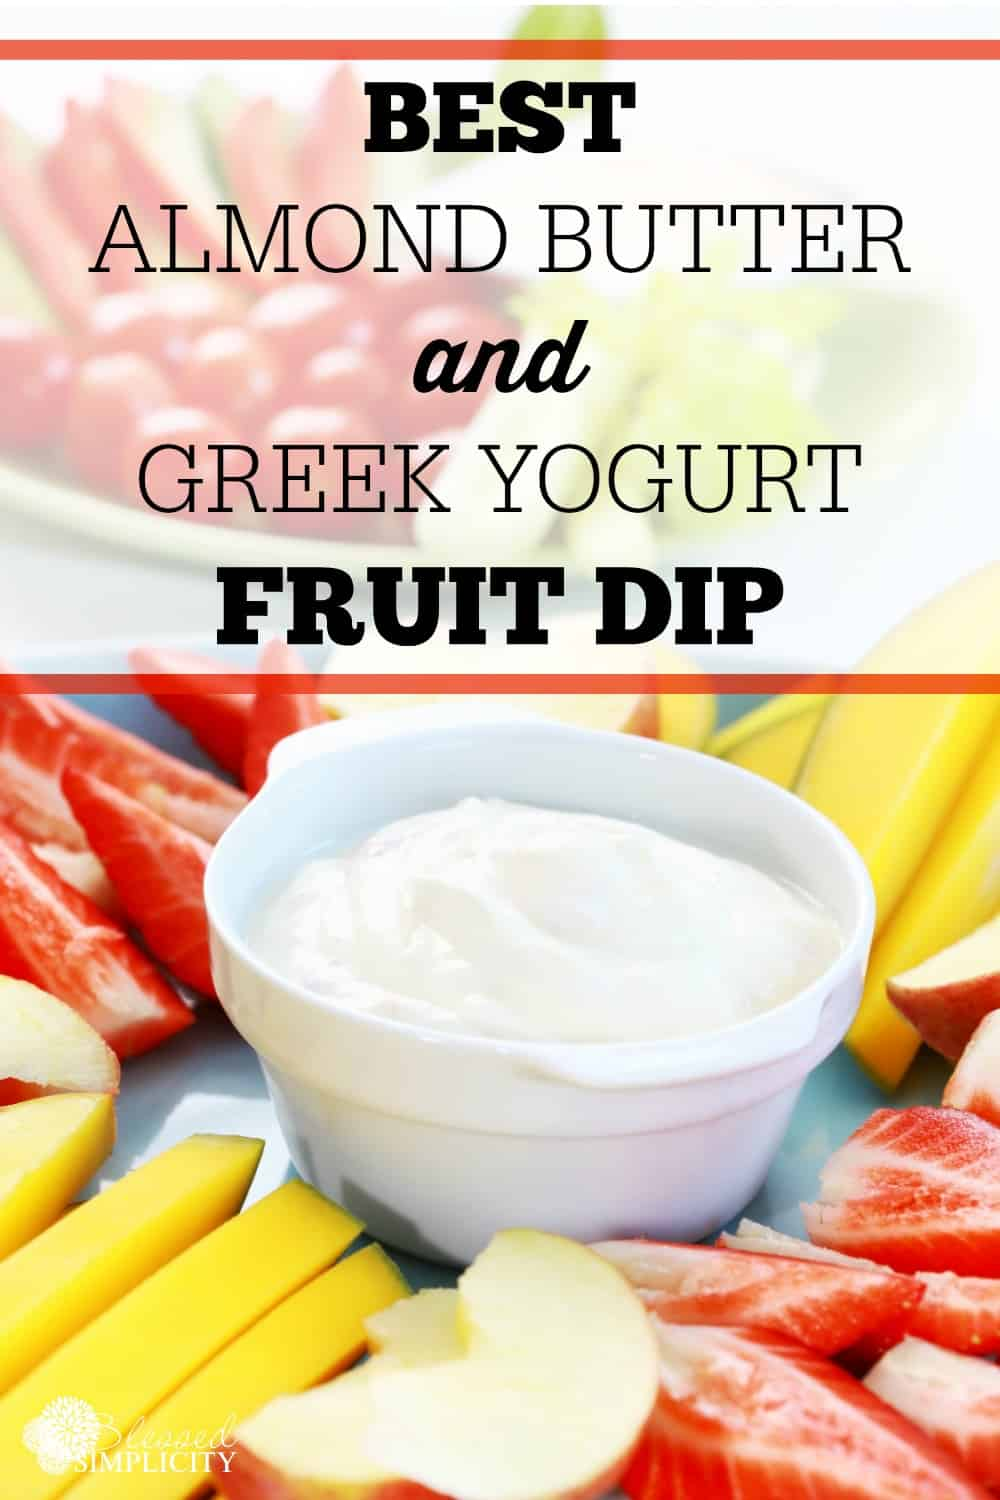 Almond Butter and Greek Yogurt Fruit Dip - Blessed Simplicity